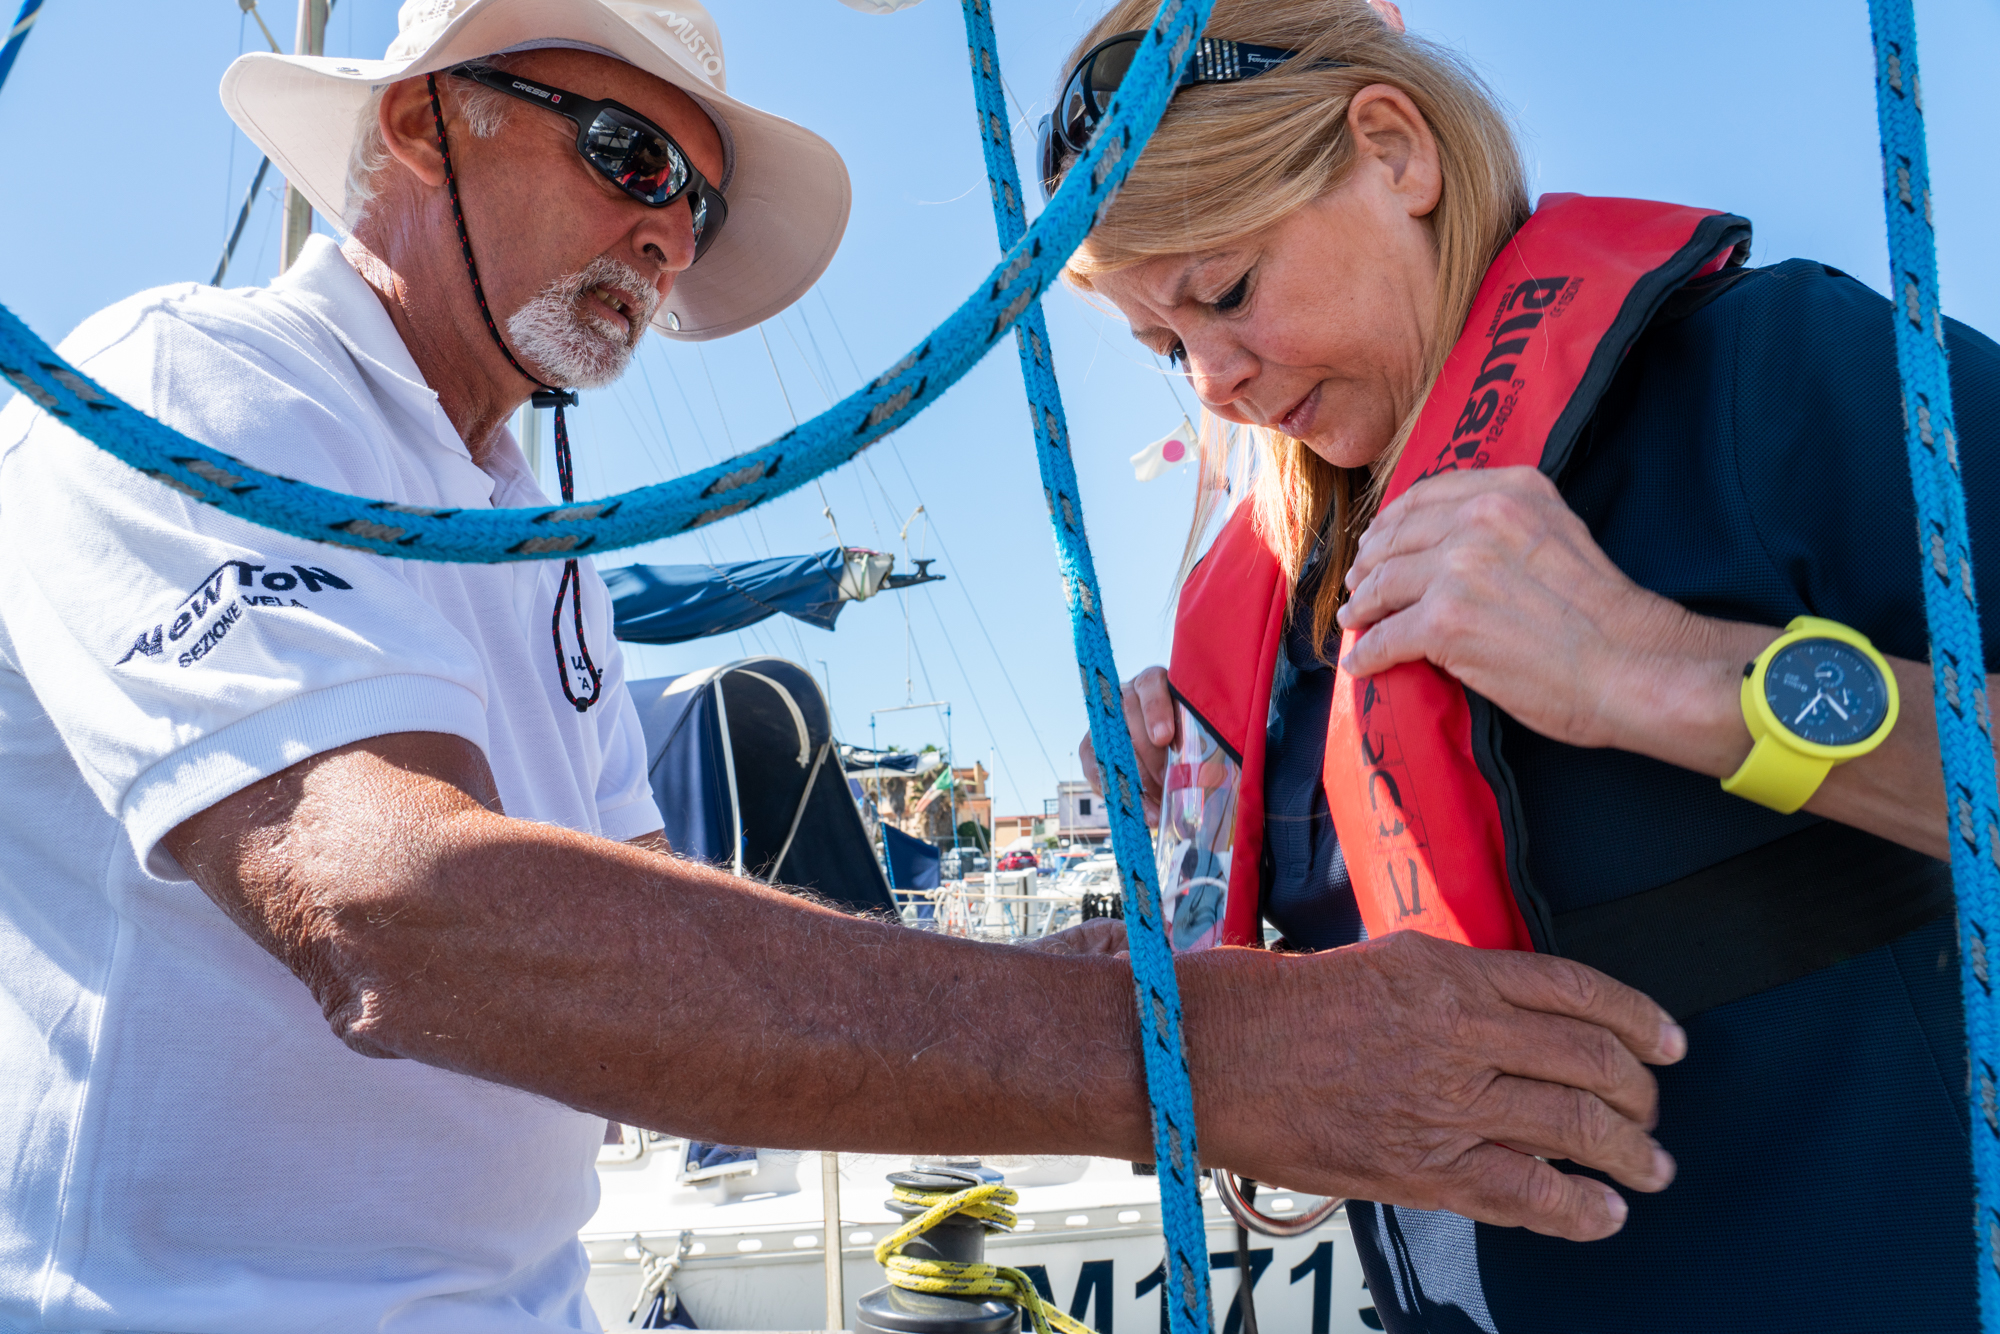 Patrizia (right) puts on a lifejacket with help from her sailing instructor, Claudio Rinaldini (left), at the Fiumicino Harbor in Italy.